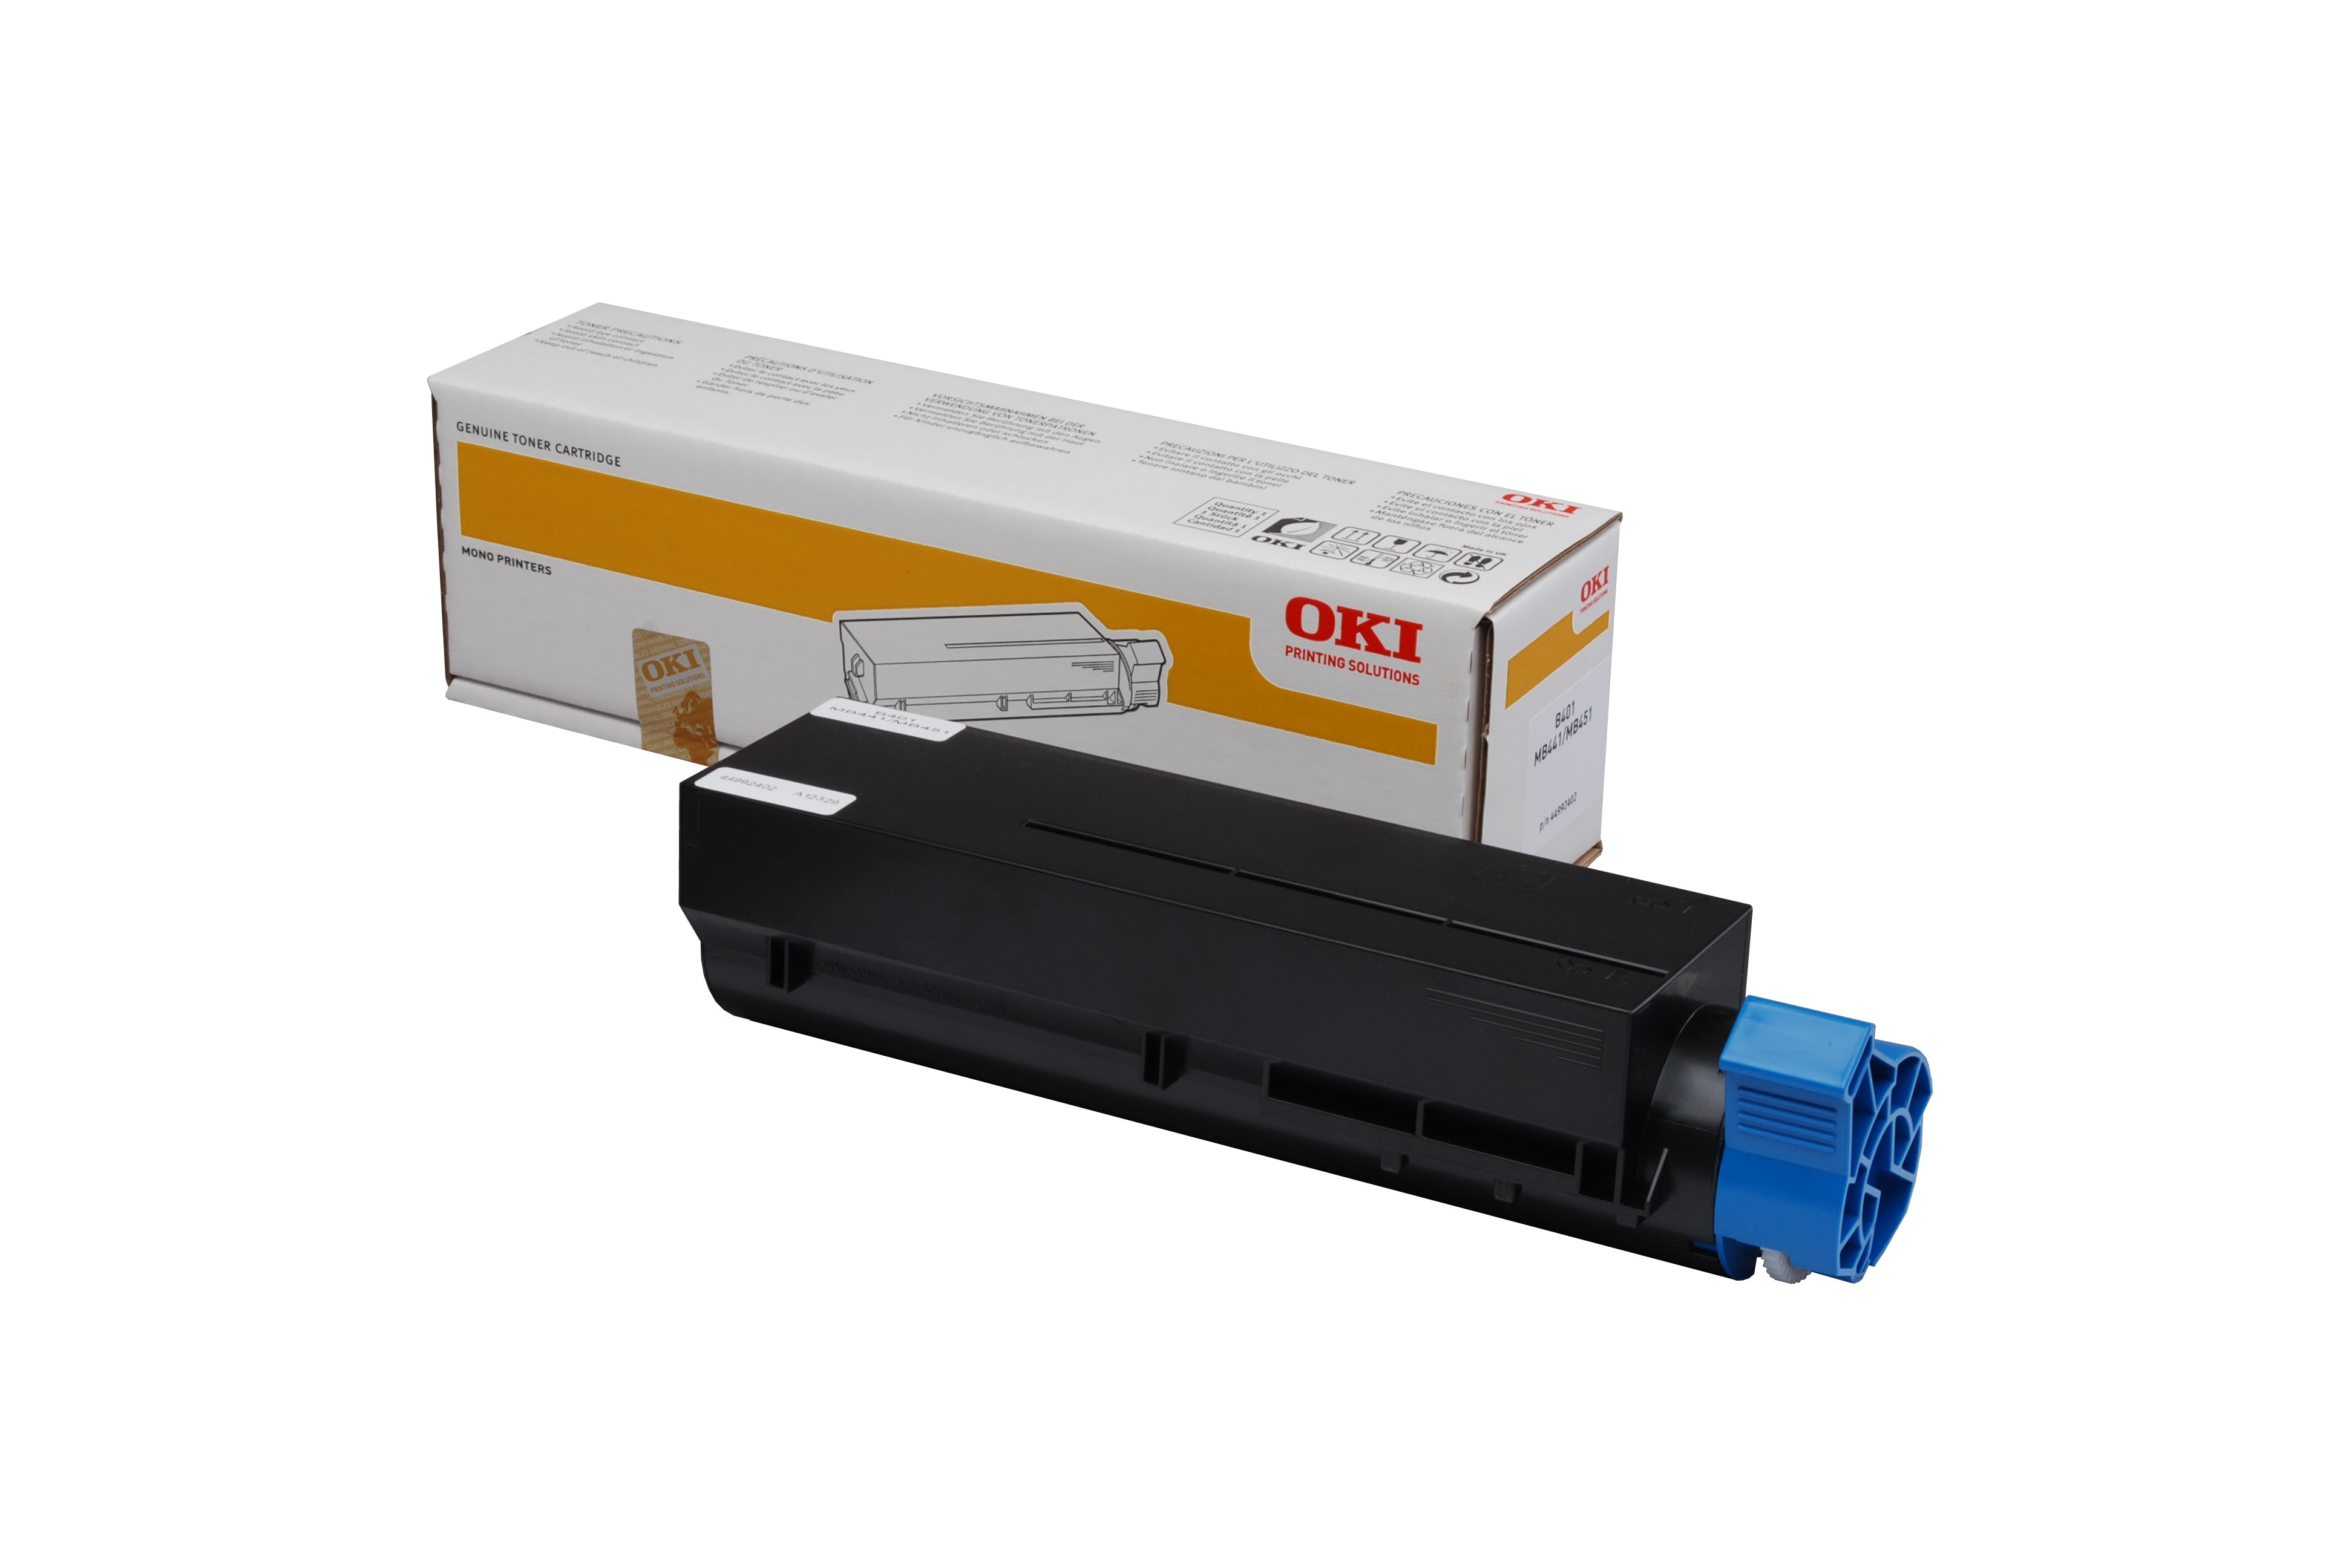 OKI B401dn Black Toner (1,500 Pages) 44992406